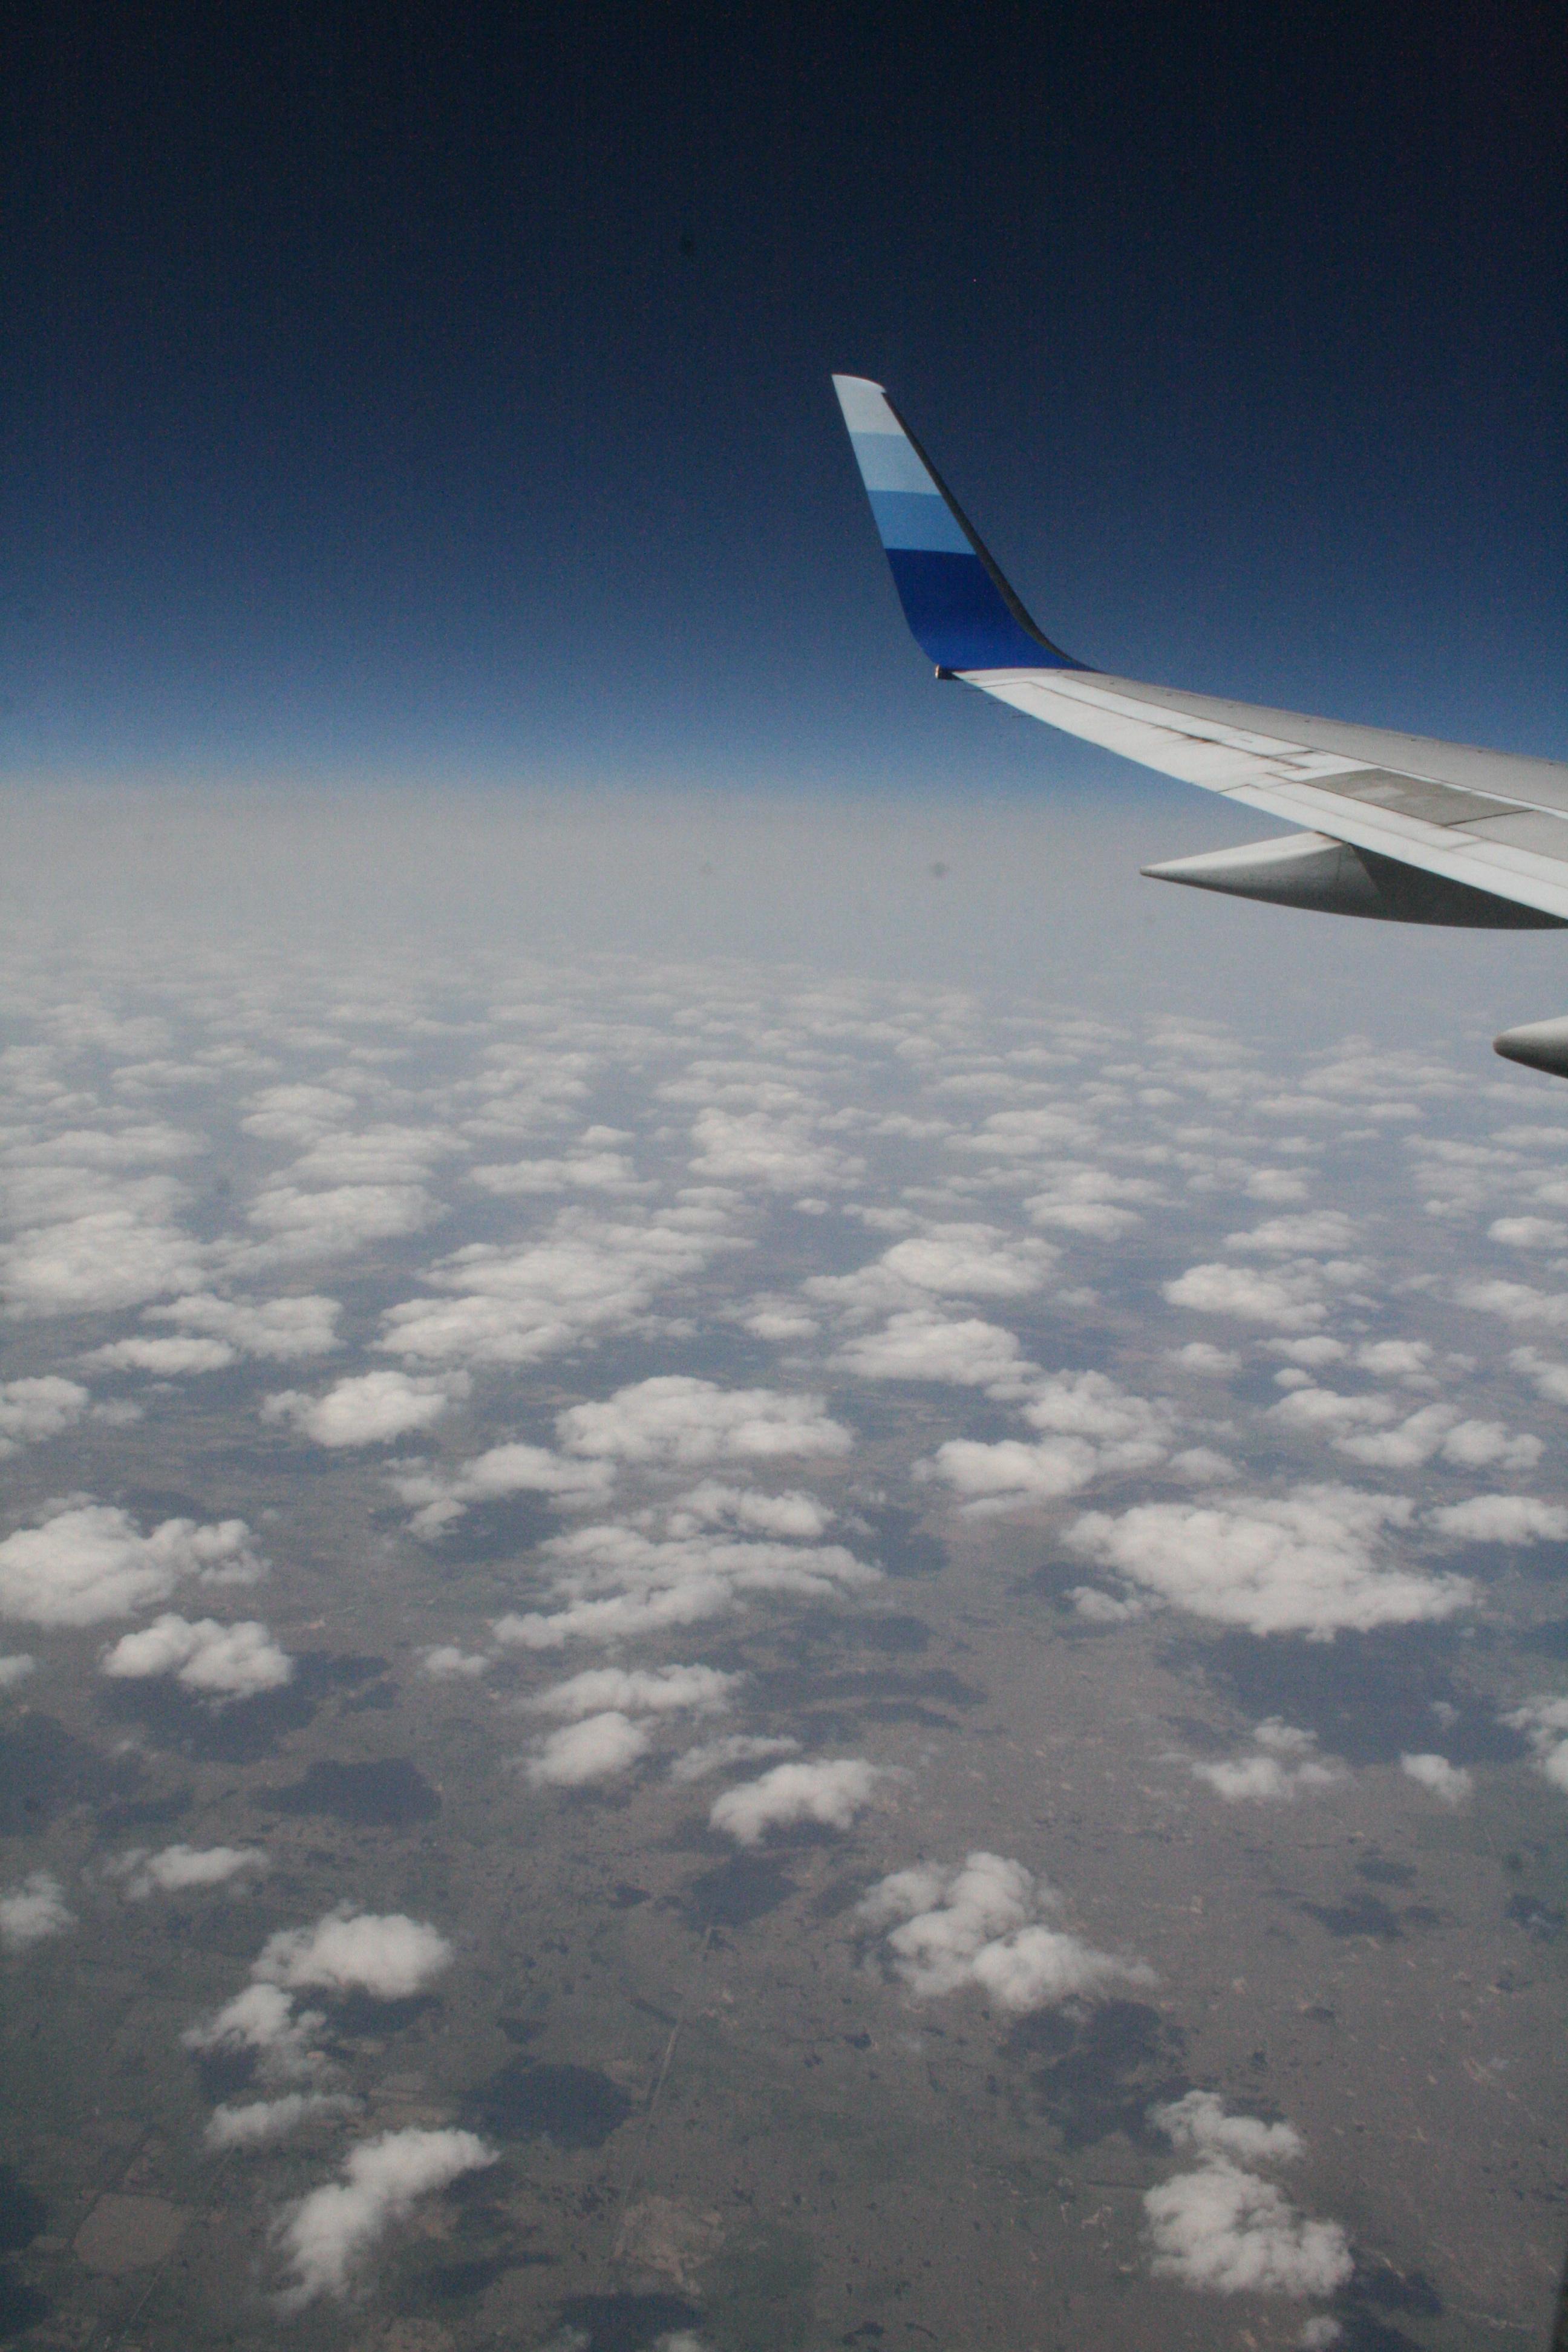 I'm going to say this is somewhere over Wisconsin.